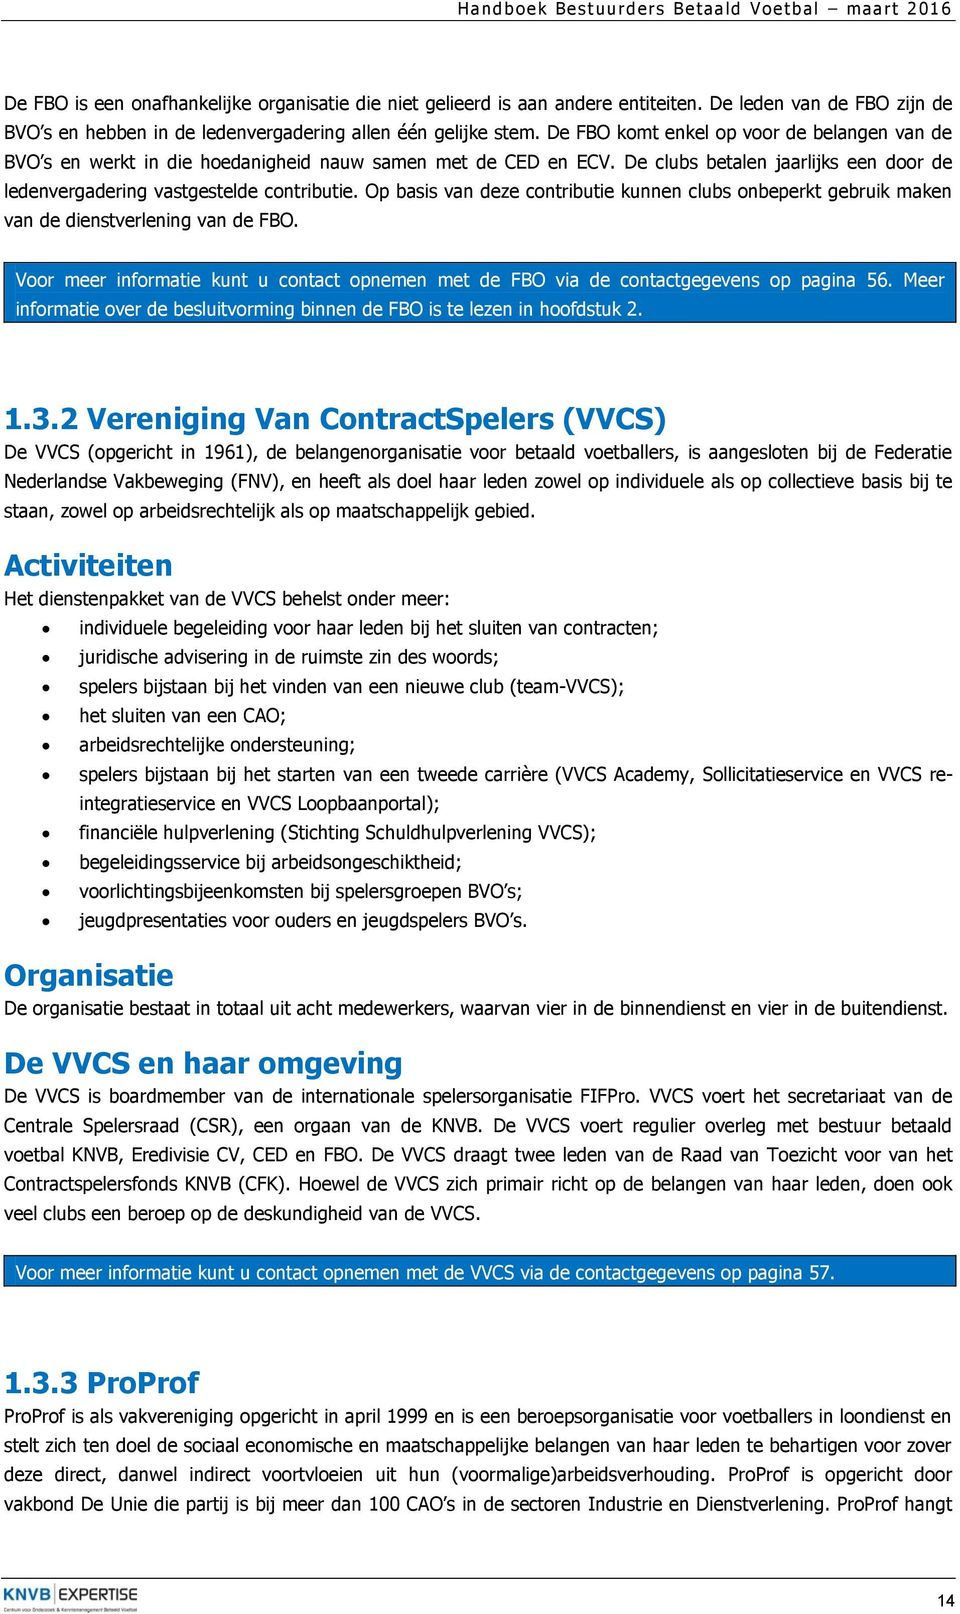 contact knvb noord